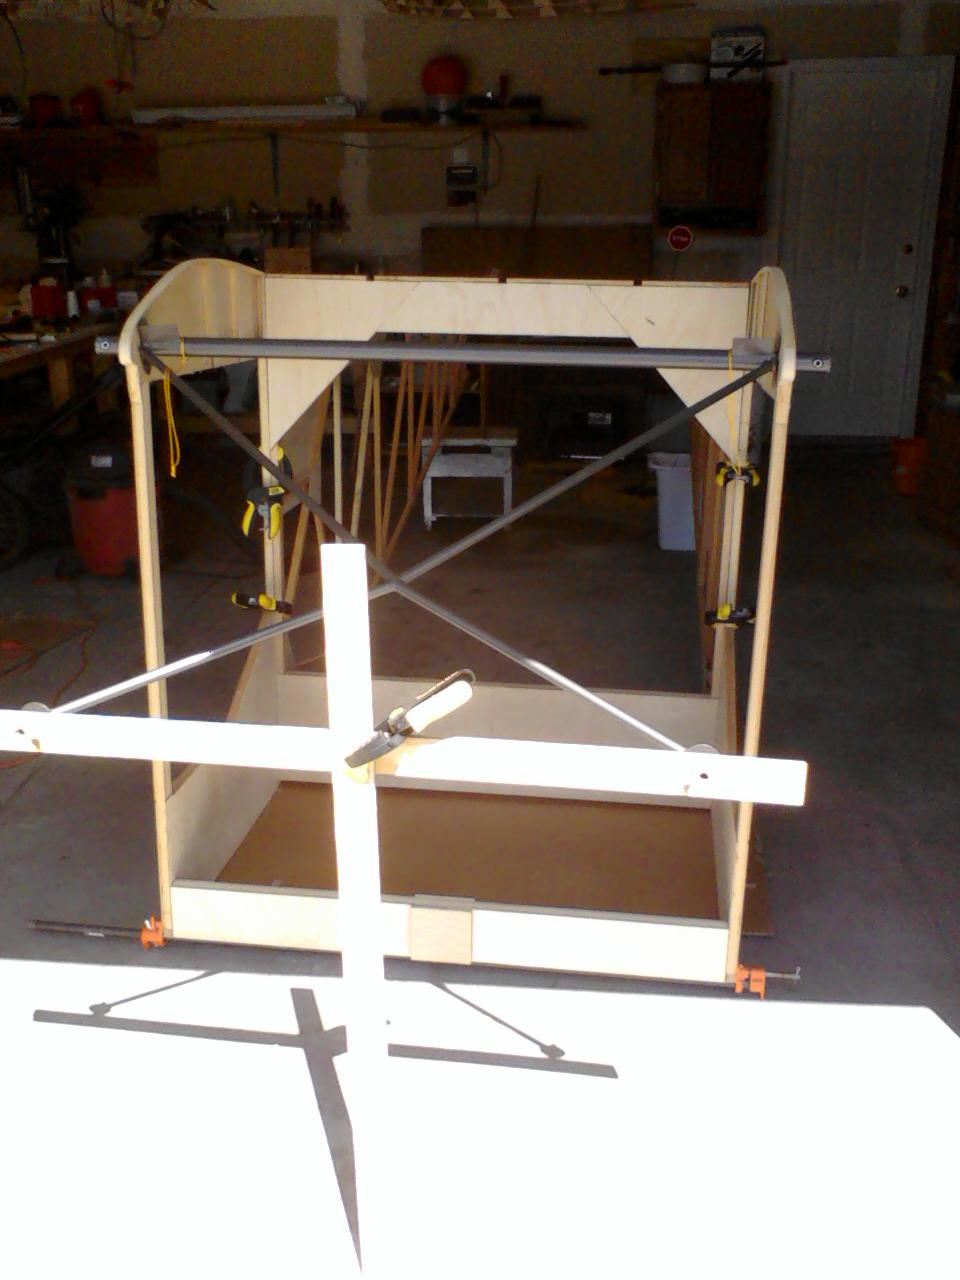 Windshield Frame in place